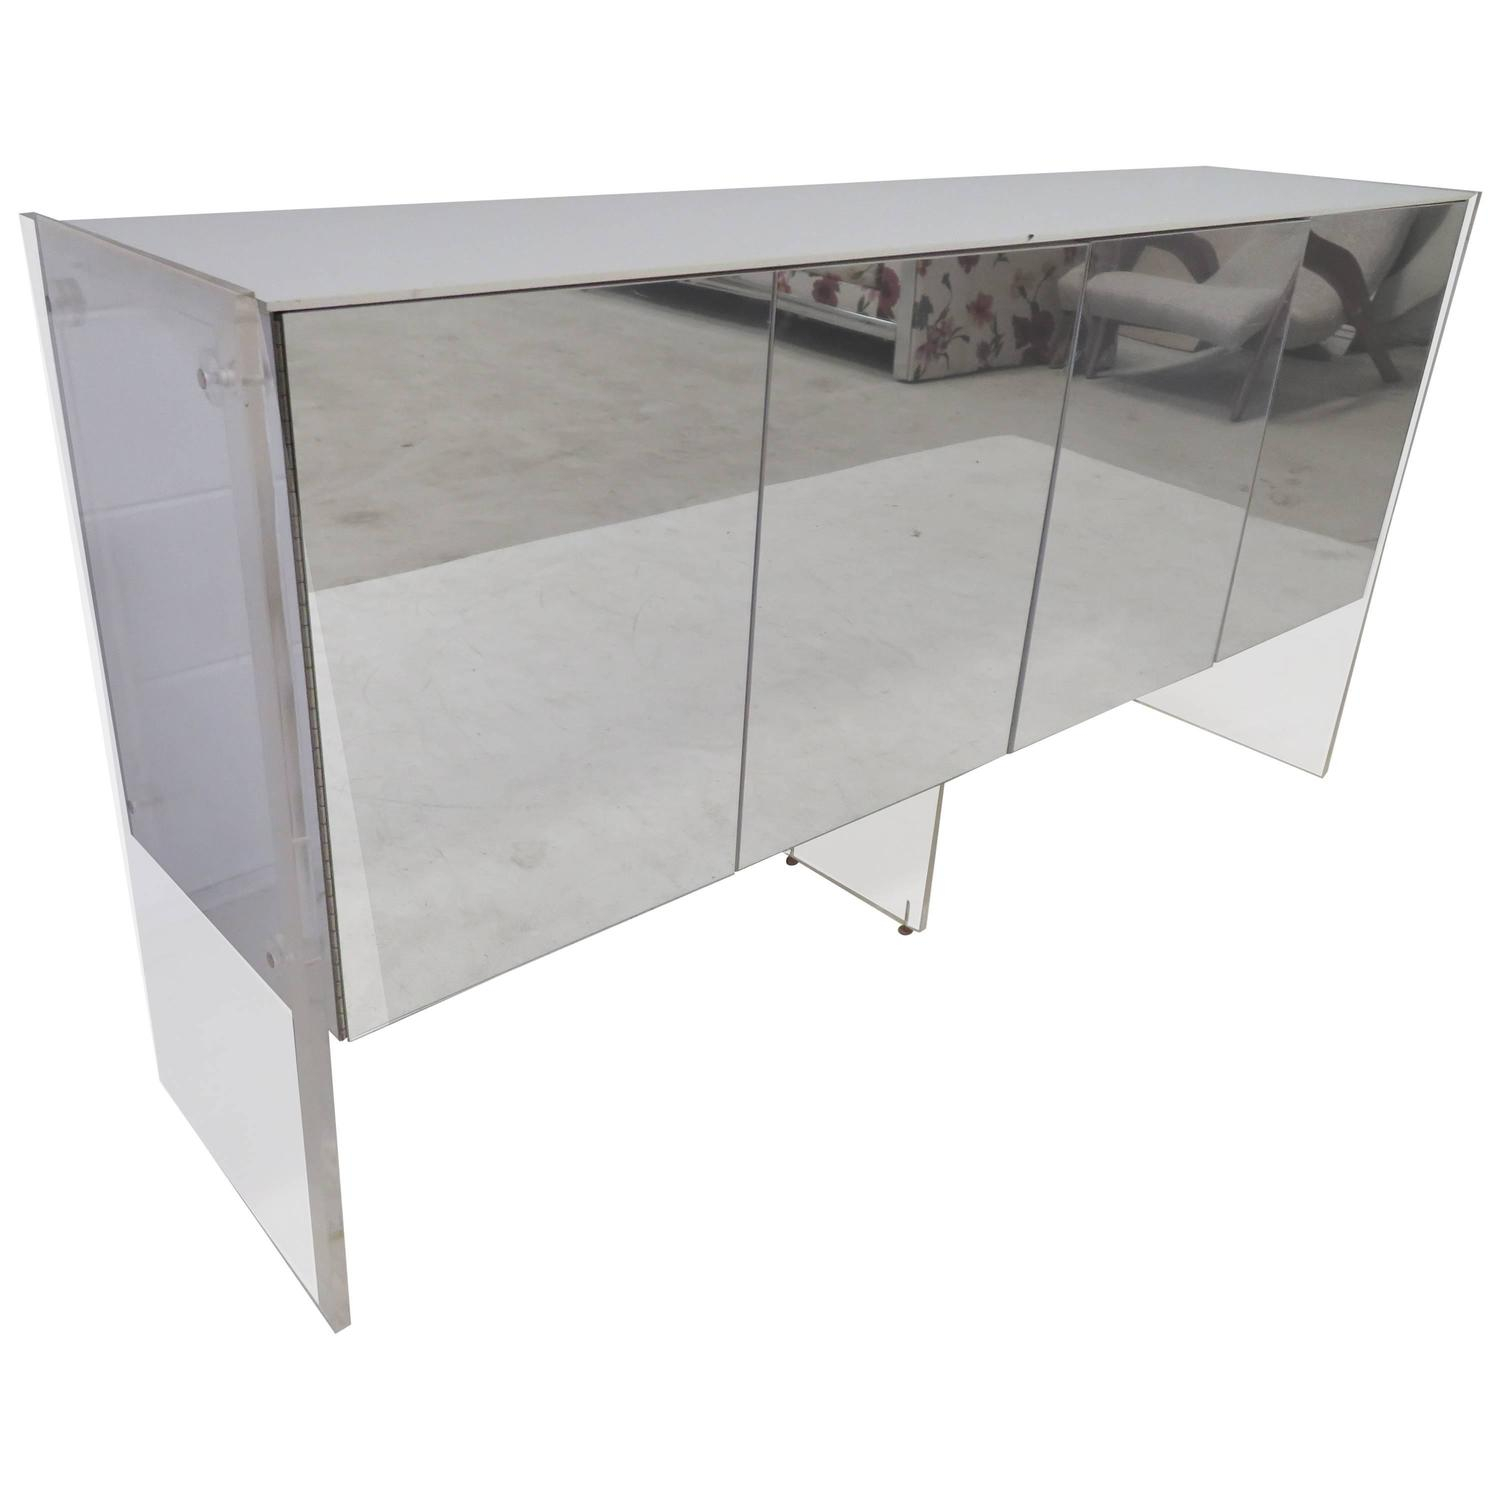 fabulous milo baughman lucite and mirror credenza midcentury  - fabulous milo baughman lucite and mirror credenza midcentury modern forsale at stdibs